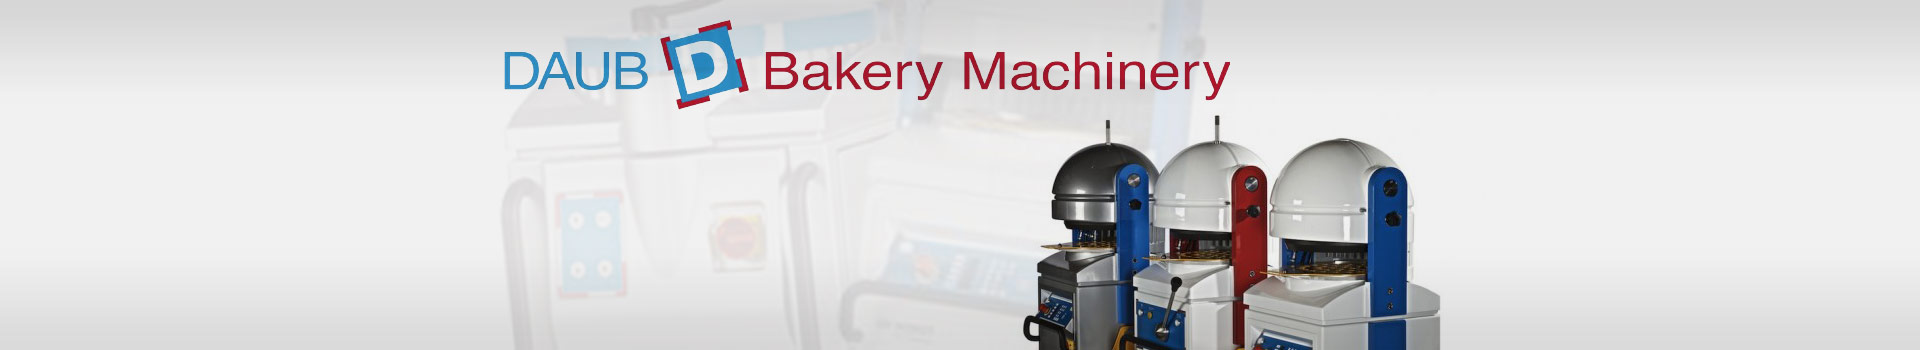 Daub Bakery Machinery